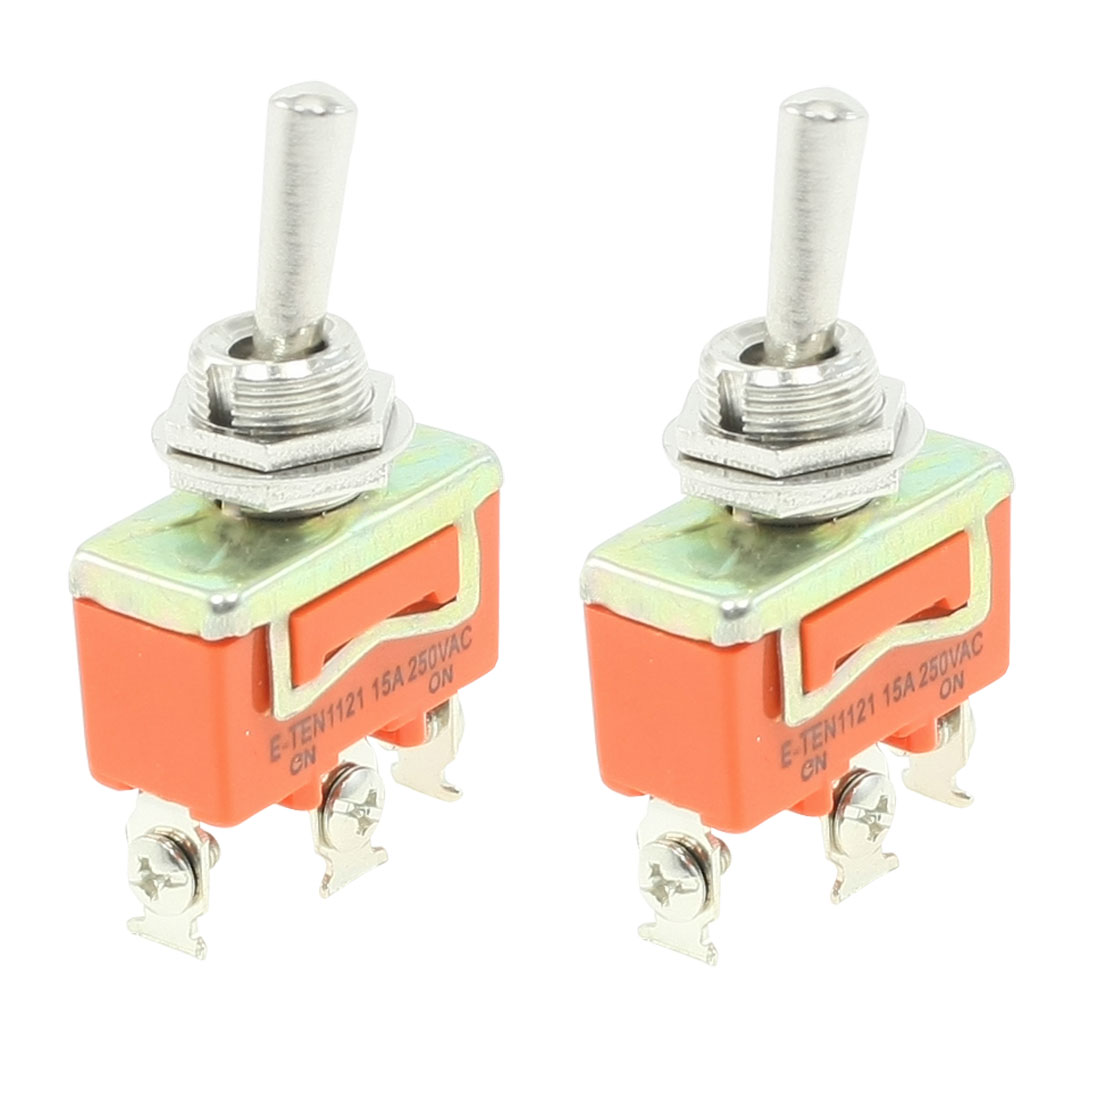 Unique Bargains 2 Pieces DPDT ON-ON 3 Pin Panel Mounted Toggle Switch 15A AC 250V